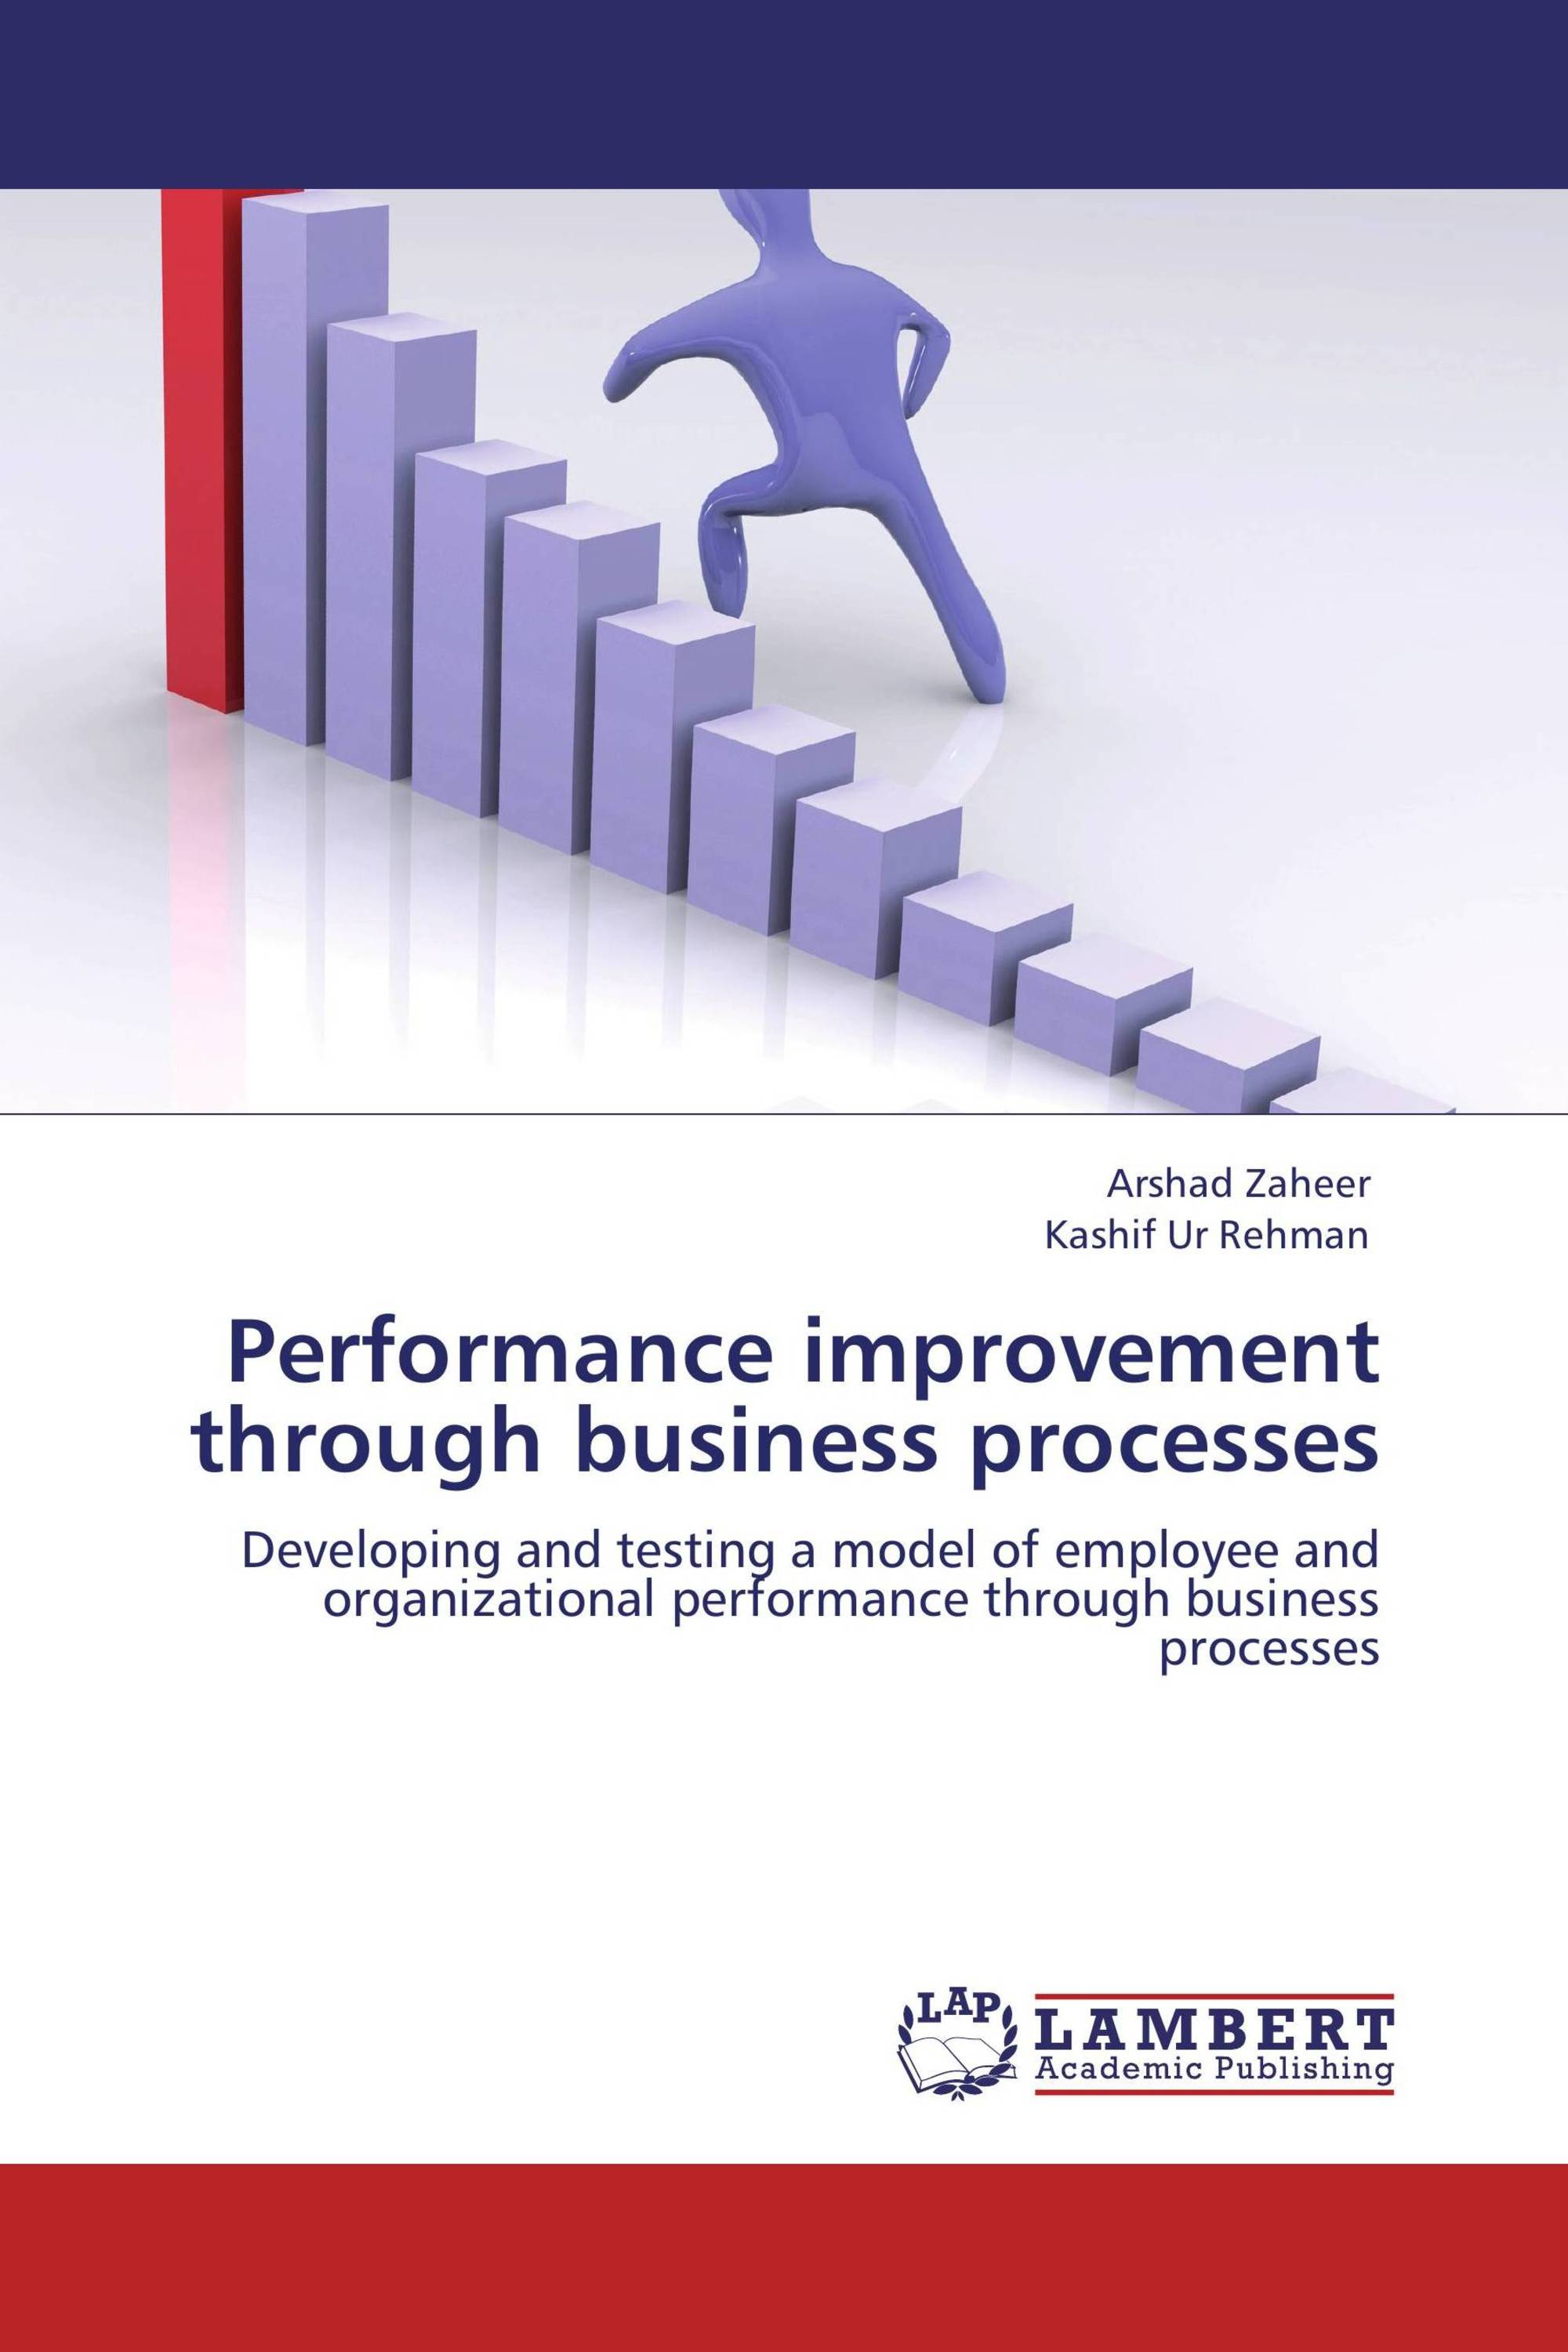 improving business processes